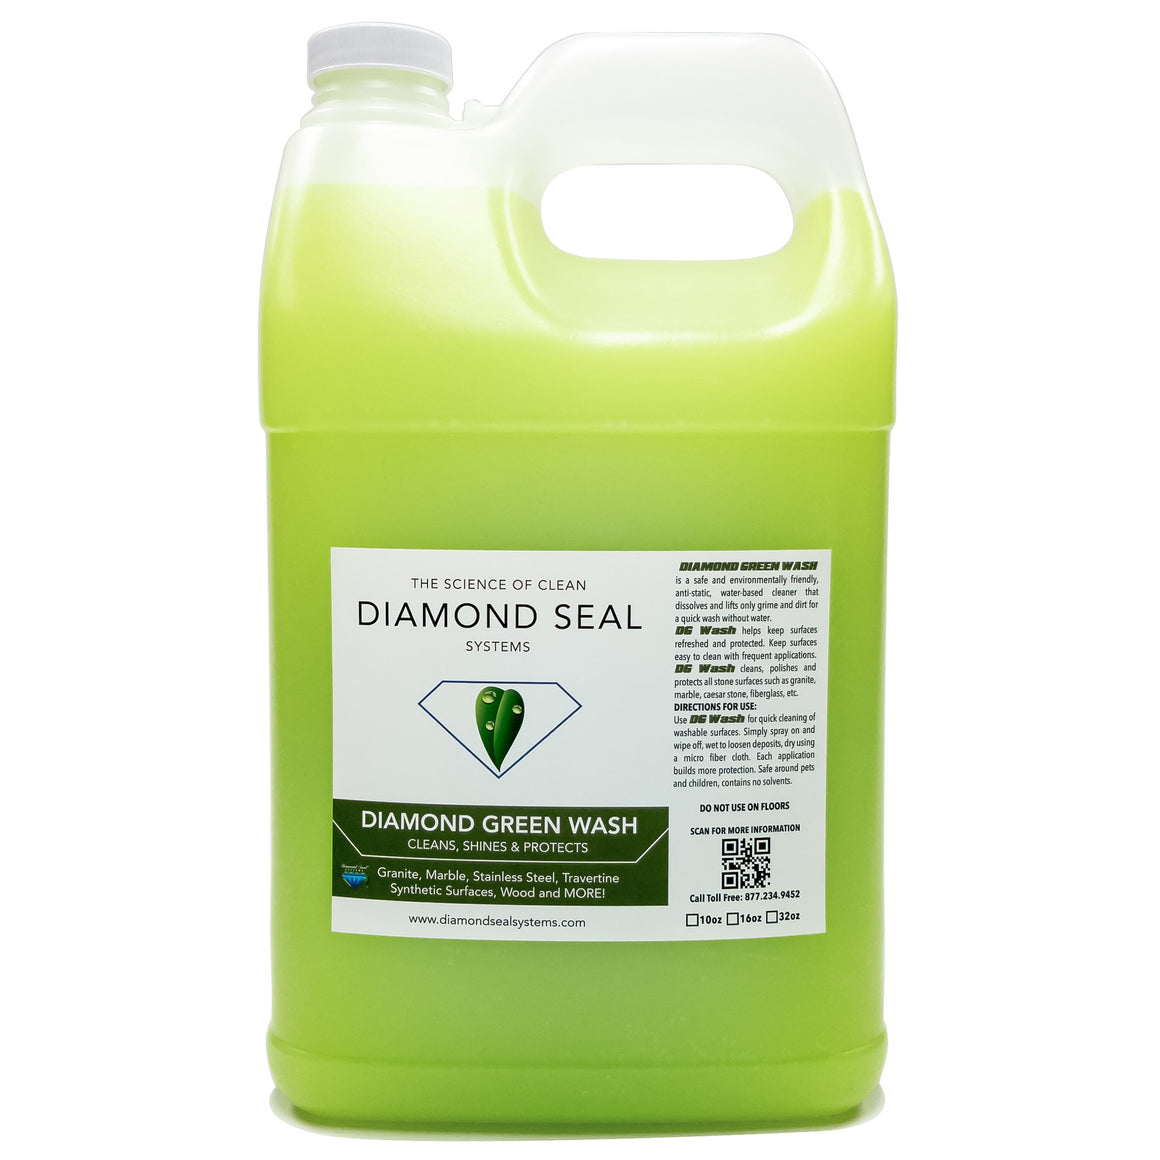 Diamond Green Wash